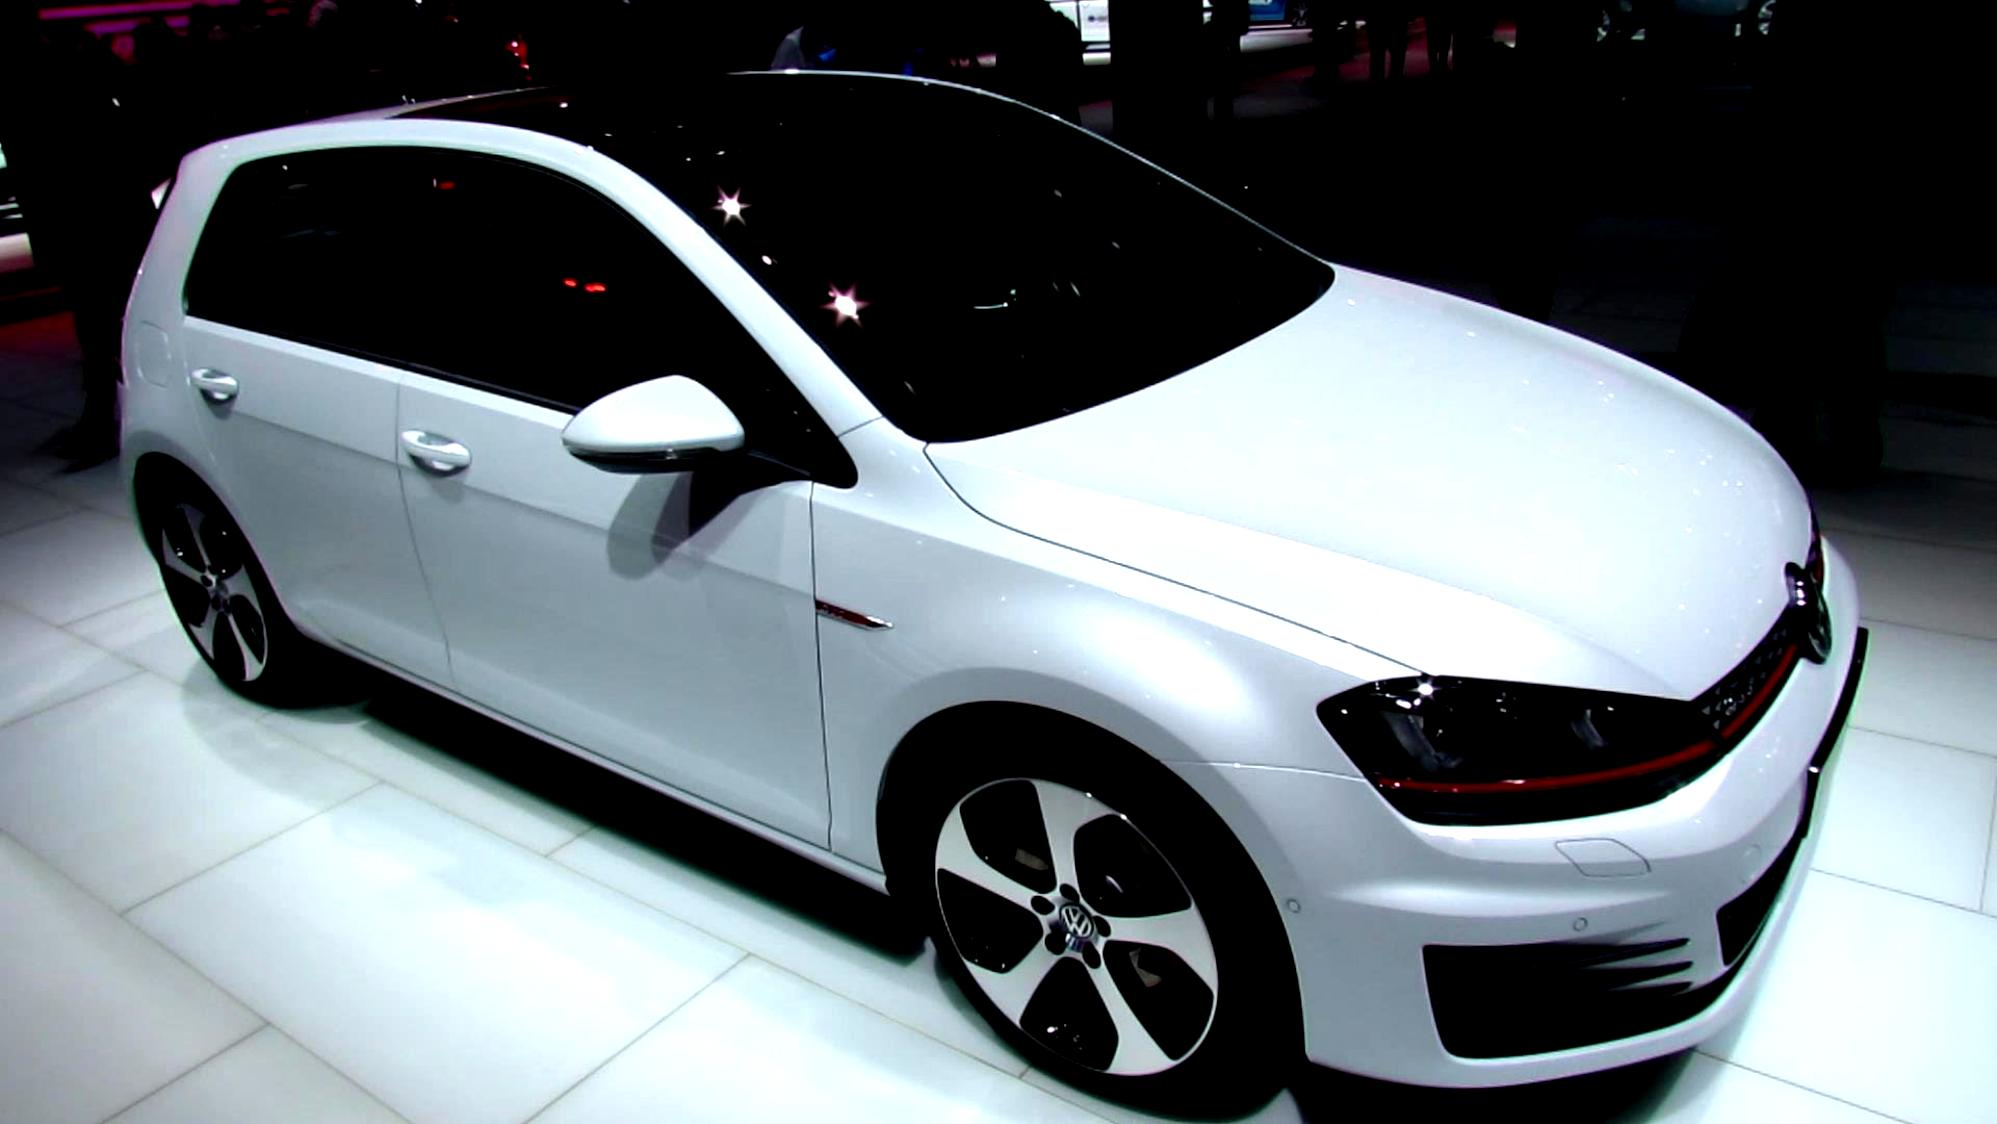 Volkswagen Golf VII 5 Doors 2012 #108